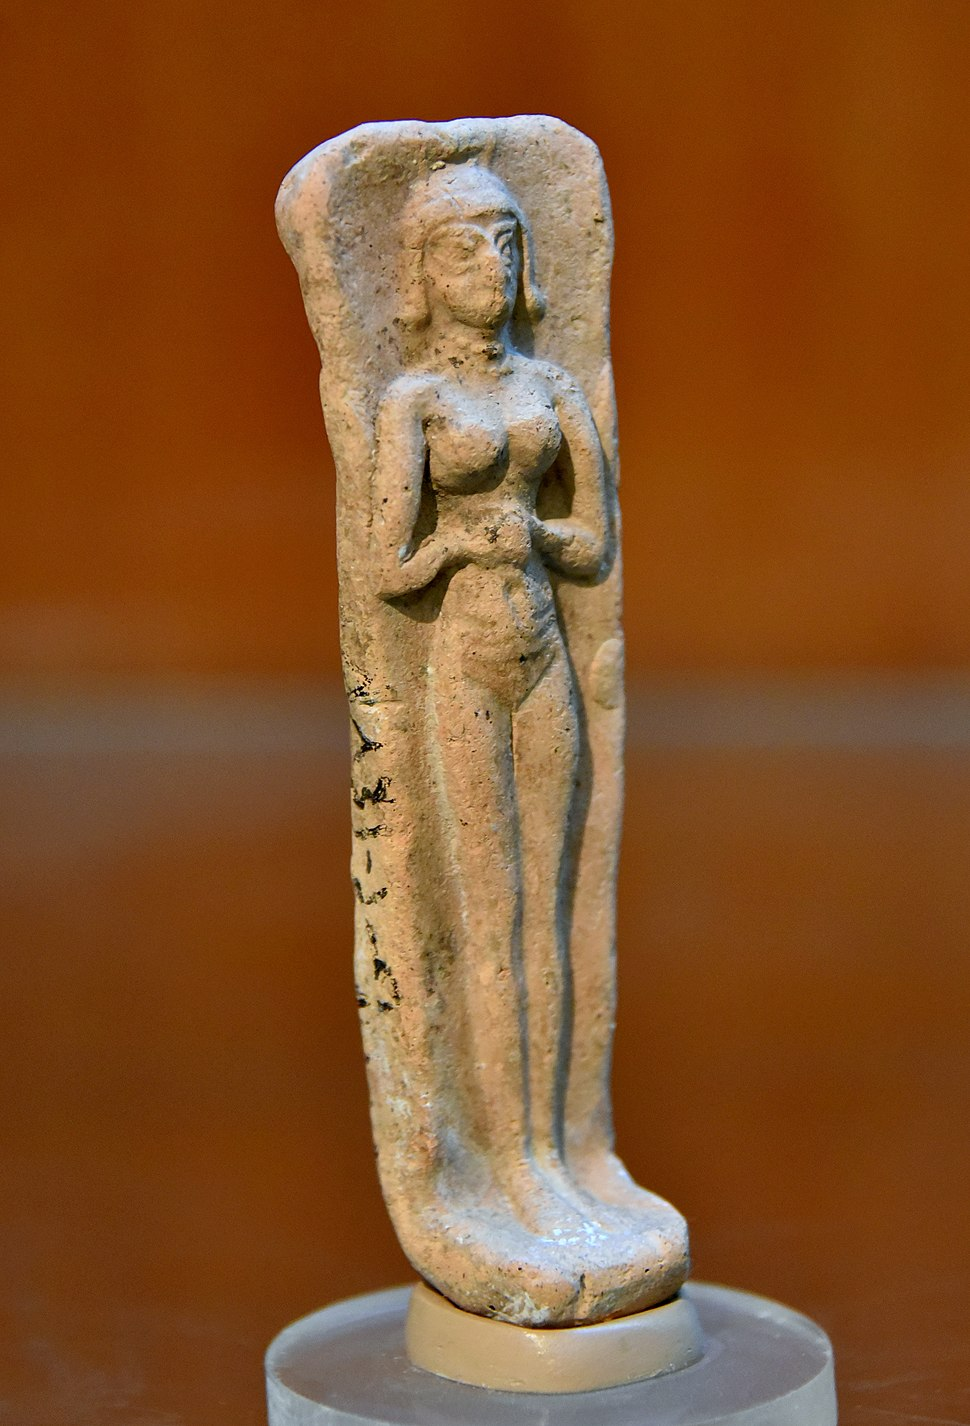 Old-Babylonian plaque of a nude female, from Tell Asmar, Iraq